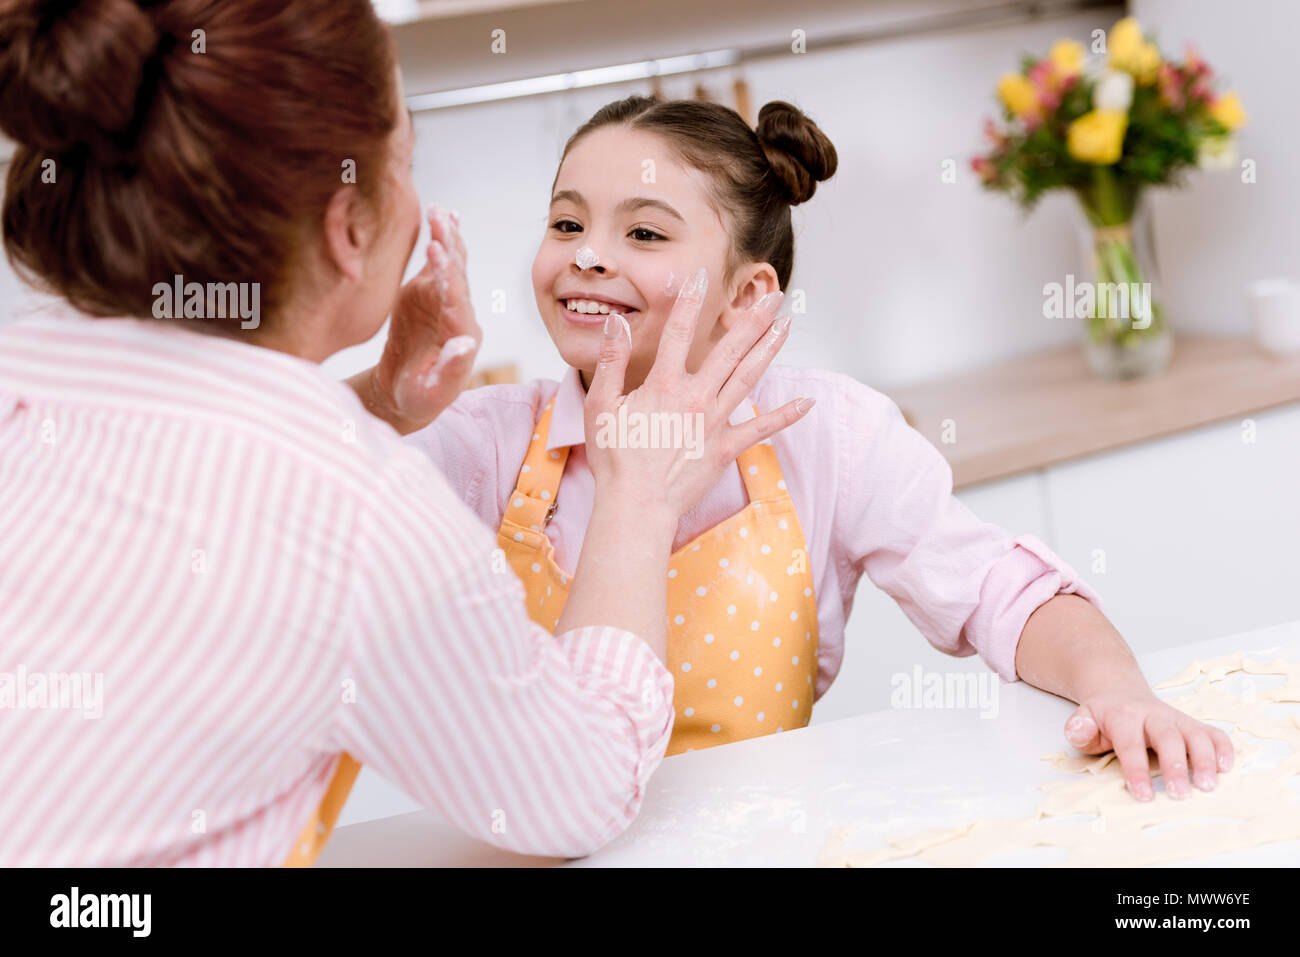 grandmother and little granddaughter playing with flour at kitchen while cooking - Stock Image